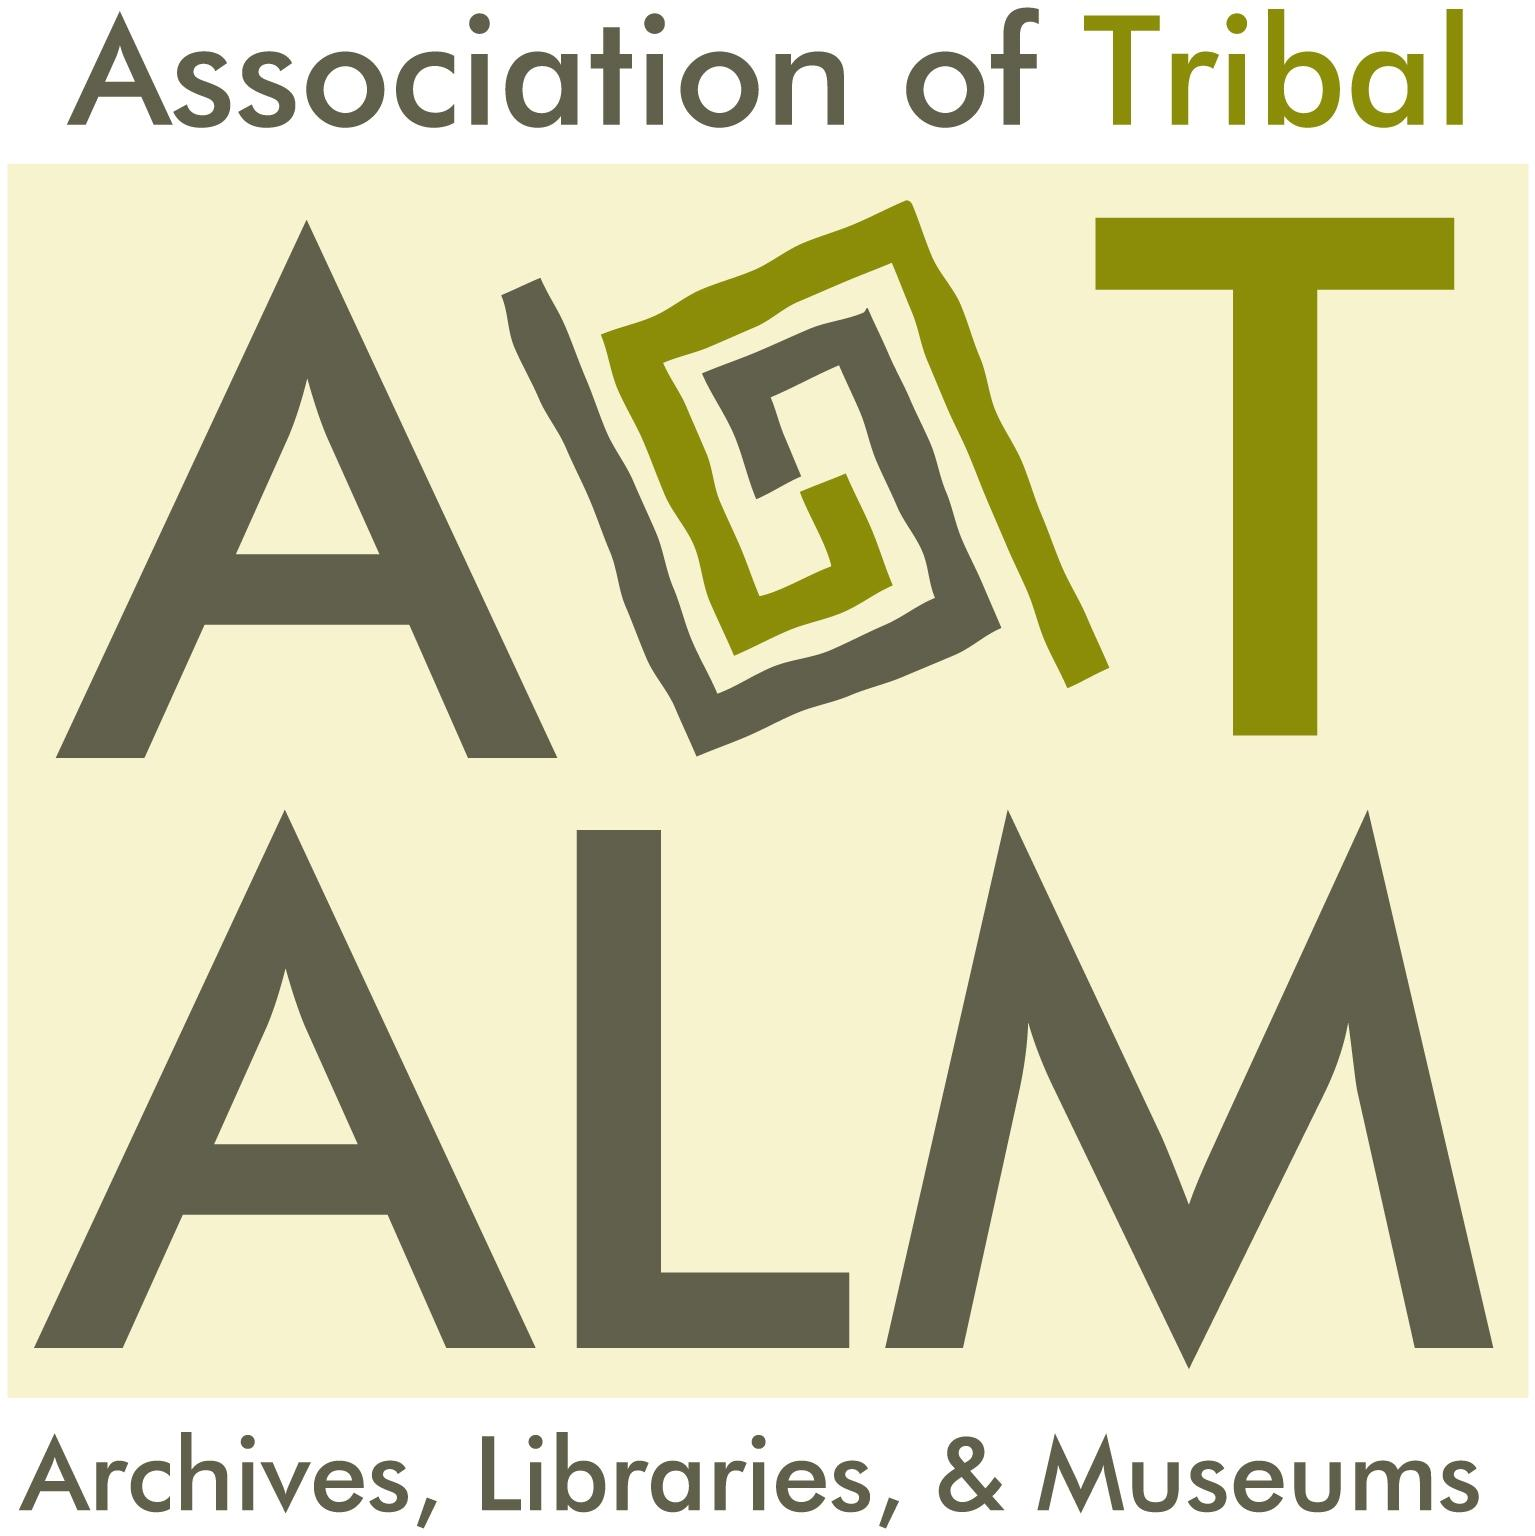 Association of Tribal Archives, Libraries, and Museums